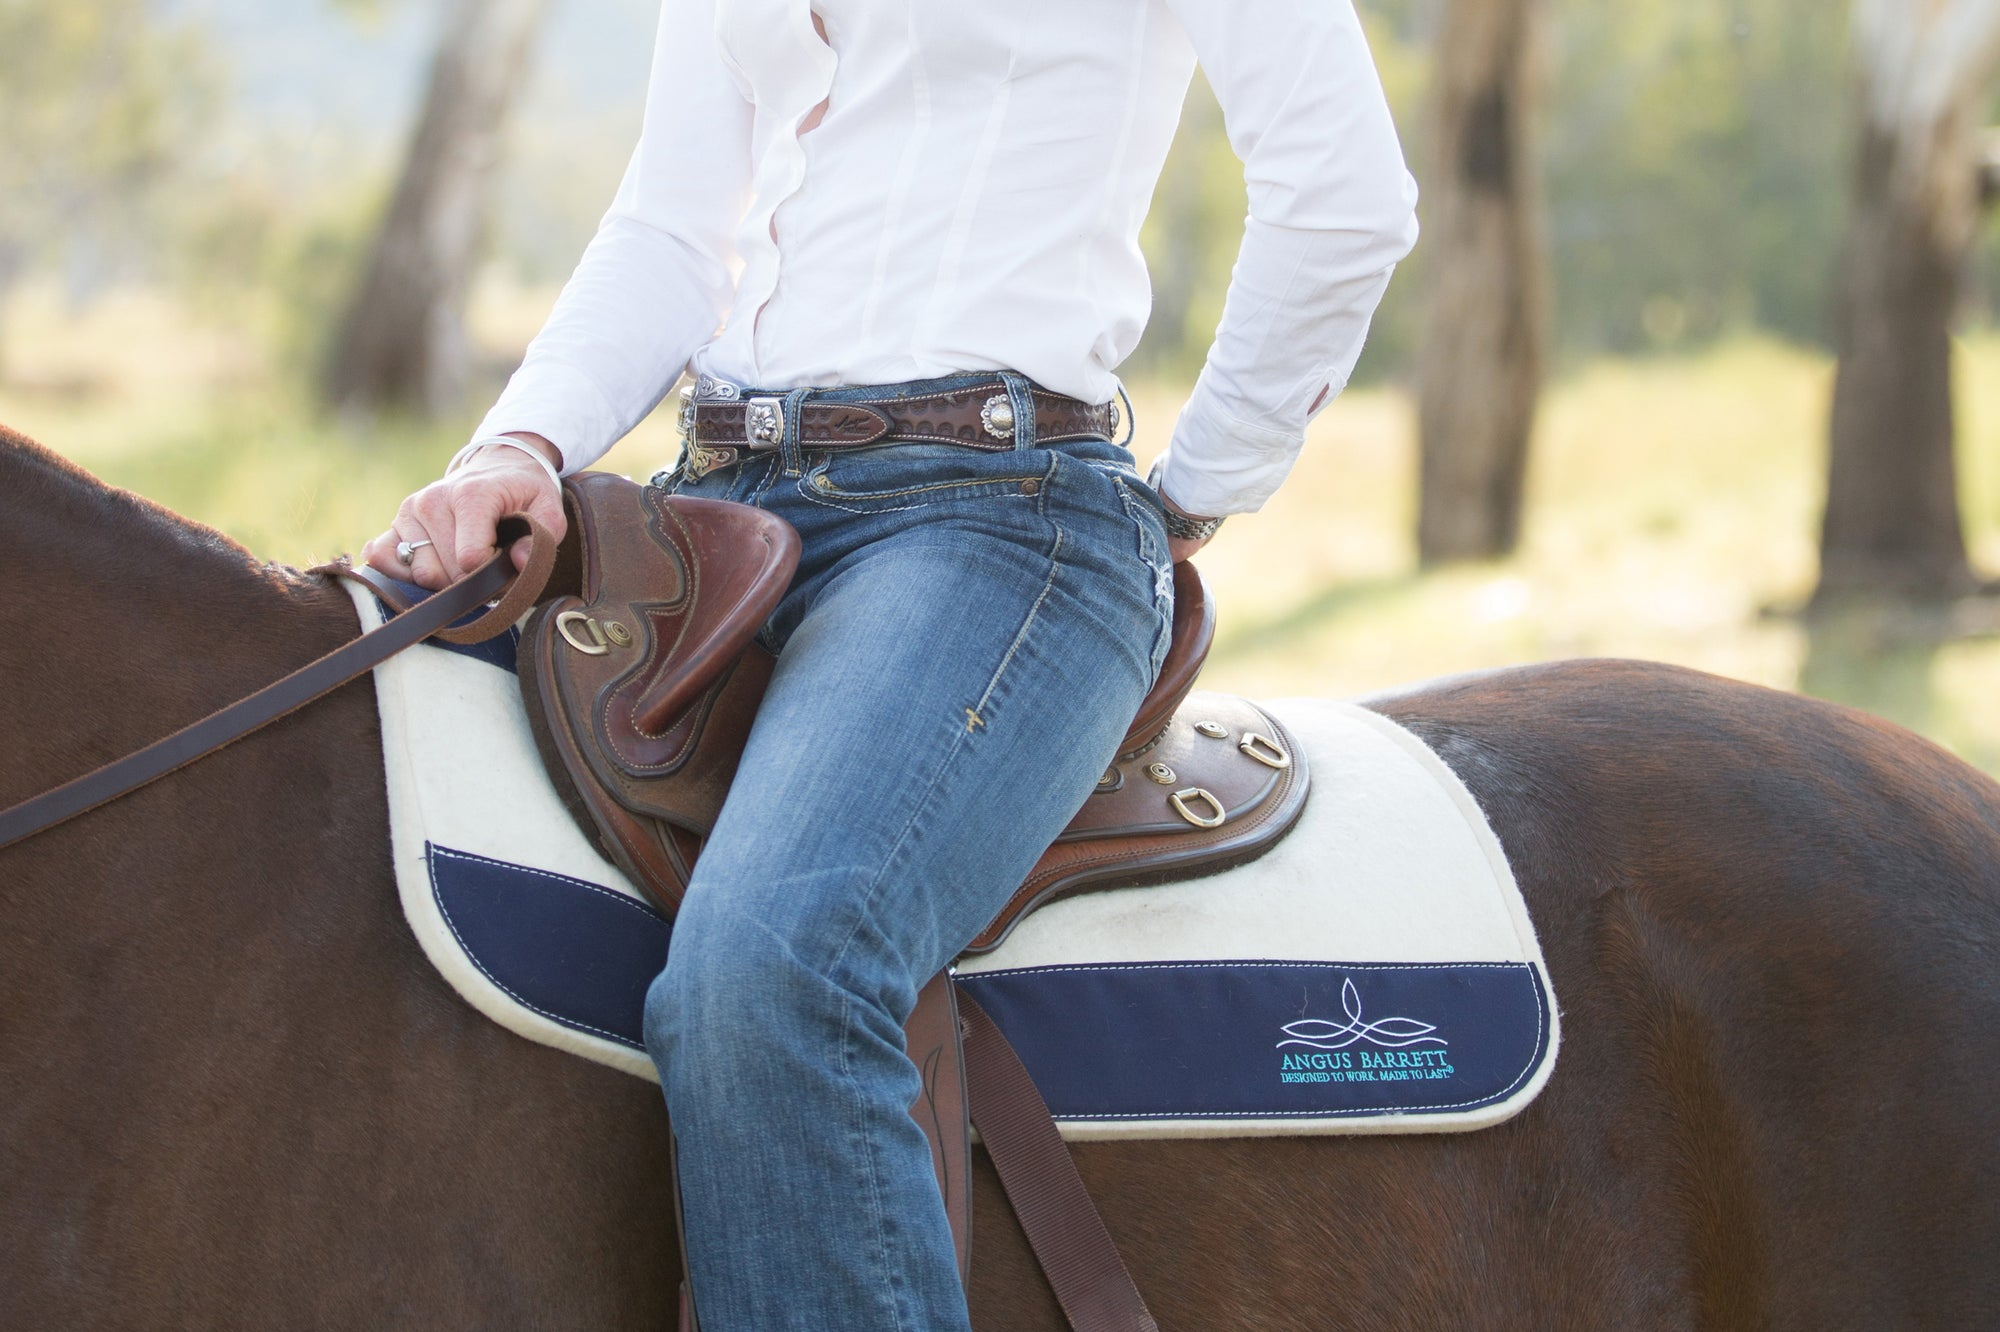 Globe Trotting - The saddle pad to rule all saddle pads